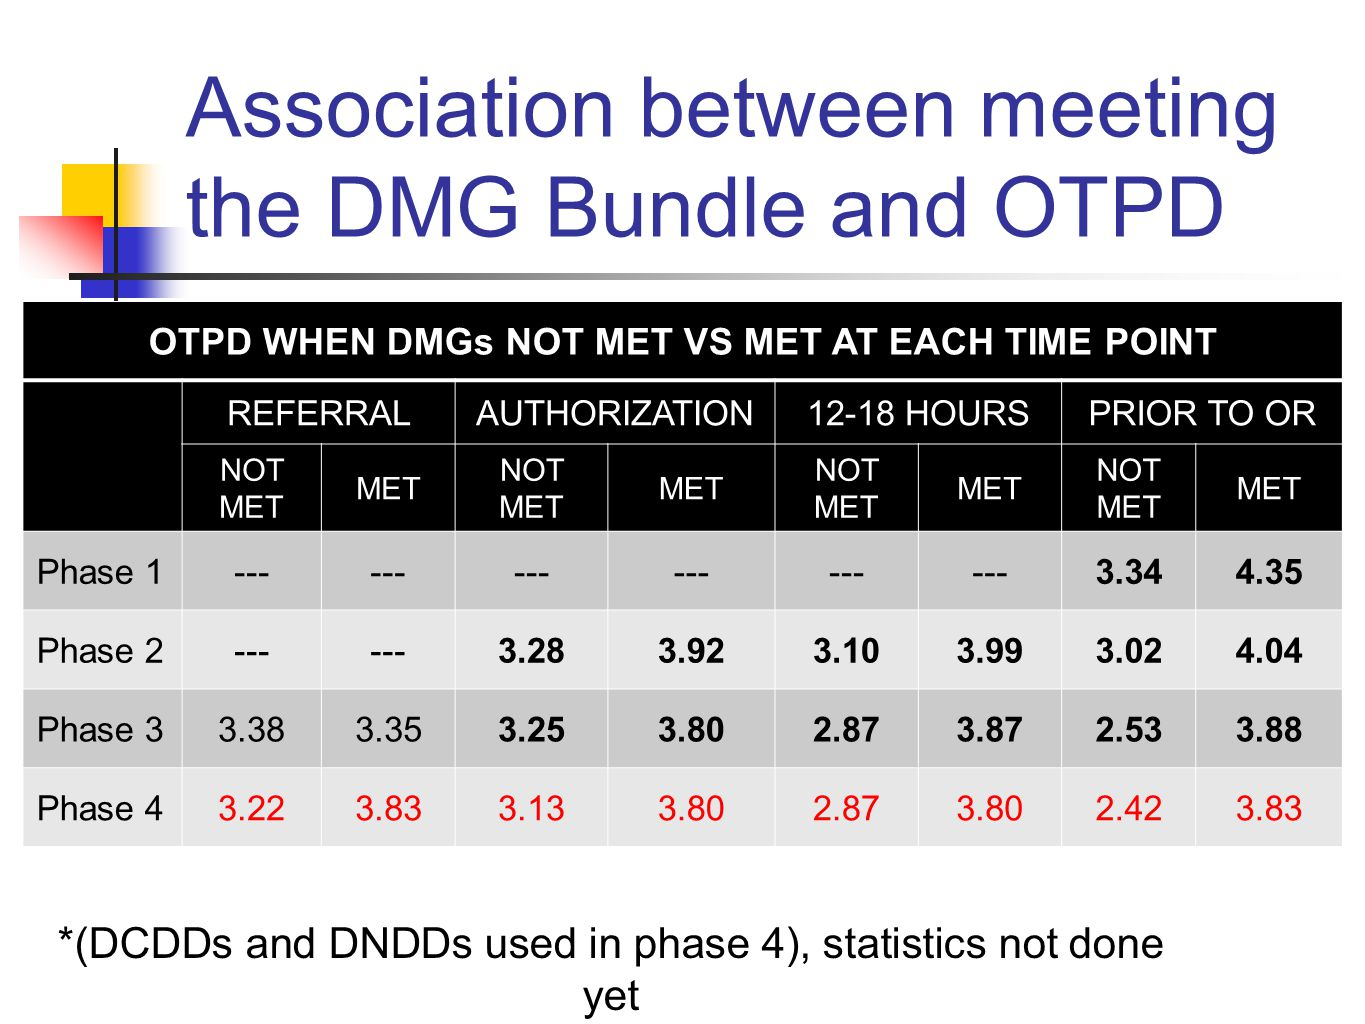 Association between meeting the DMG Bundle and OTPD